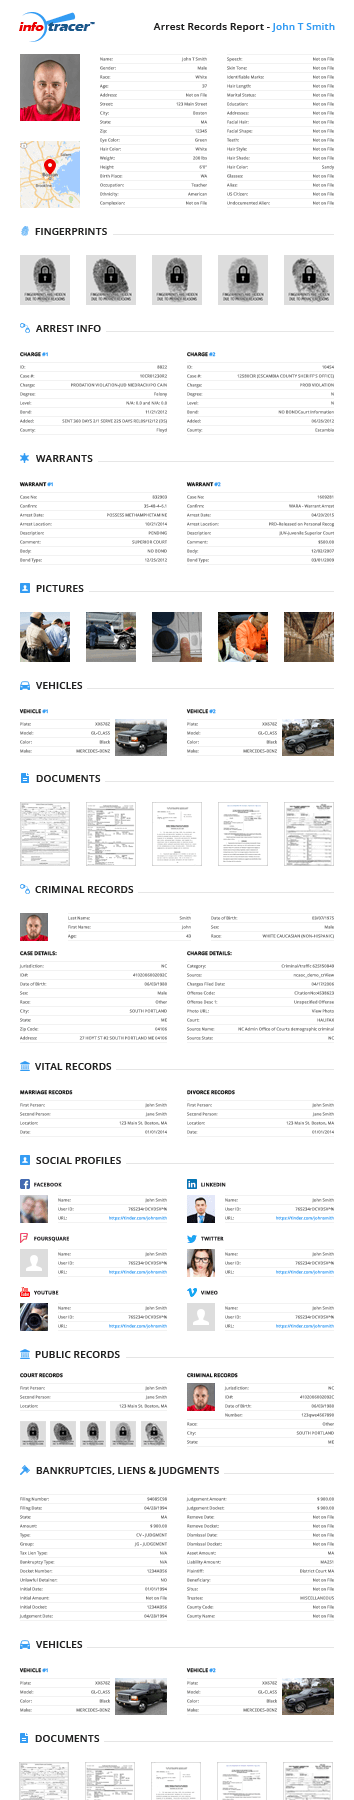 Arrest Records Report